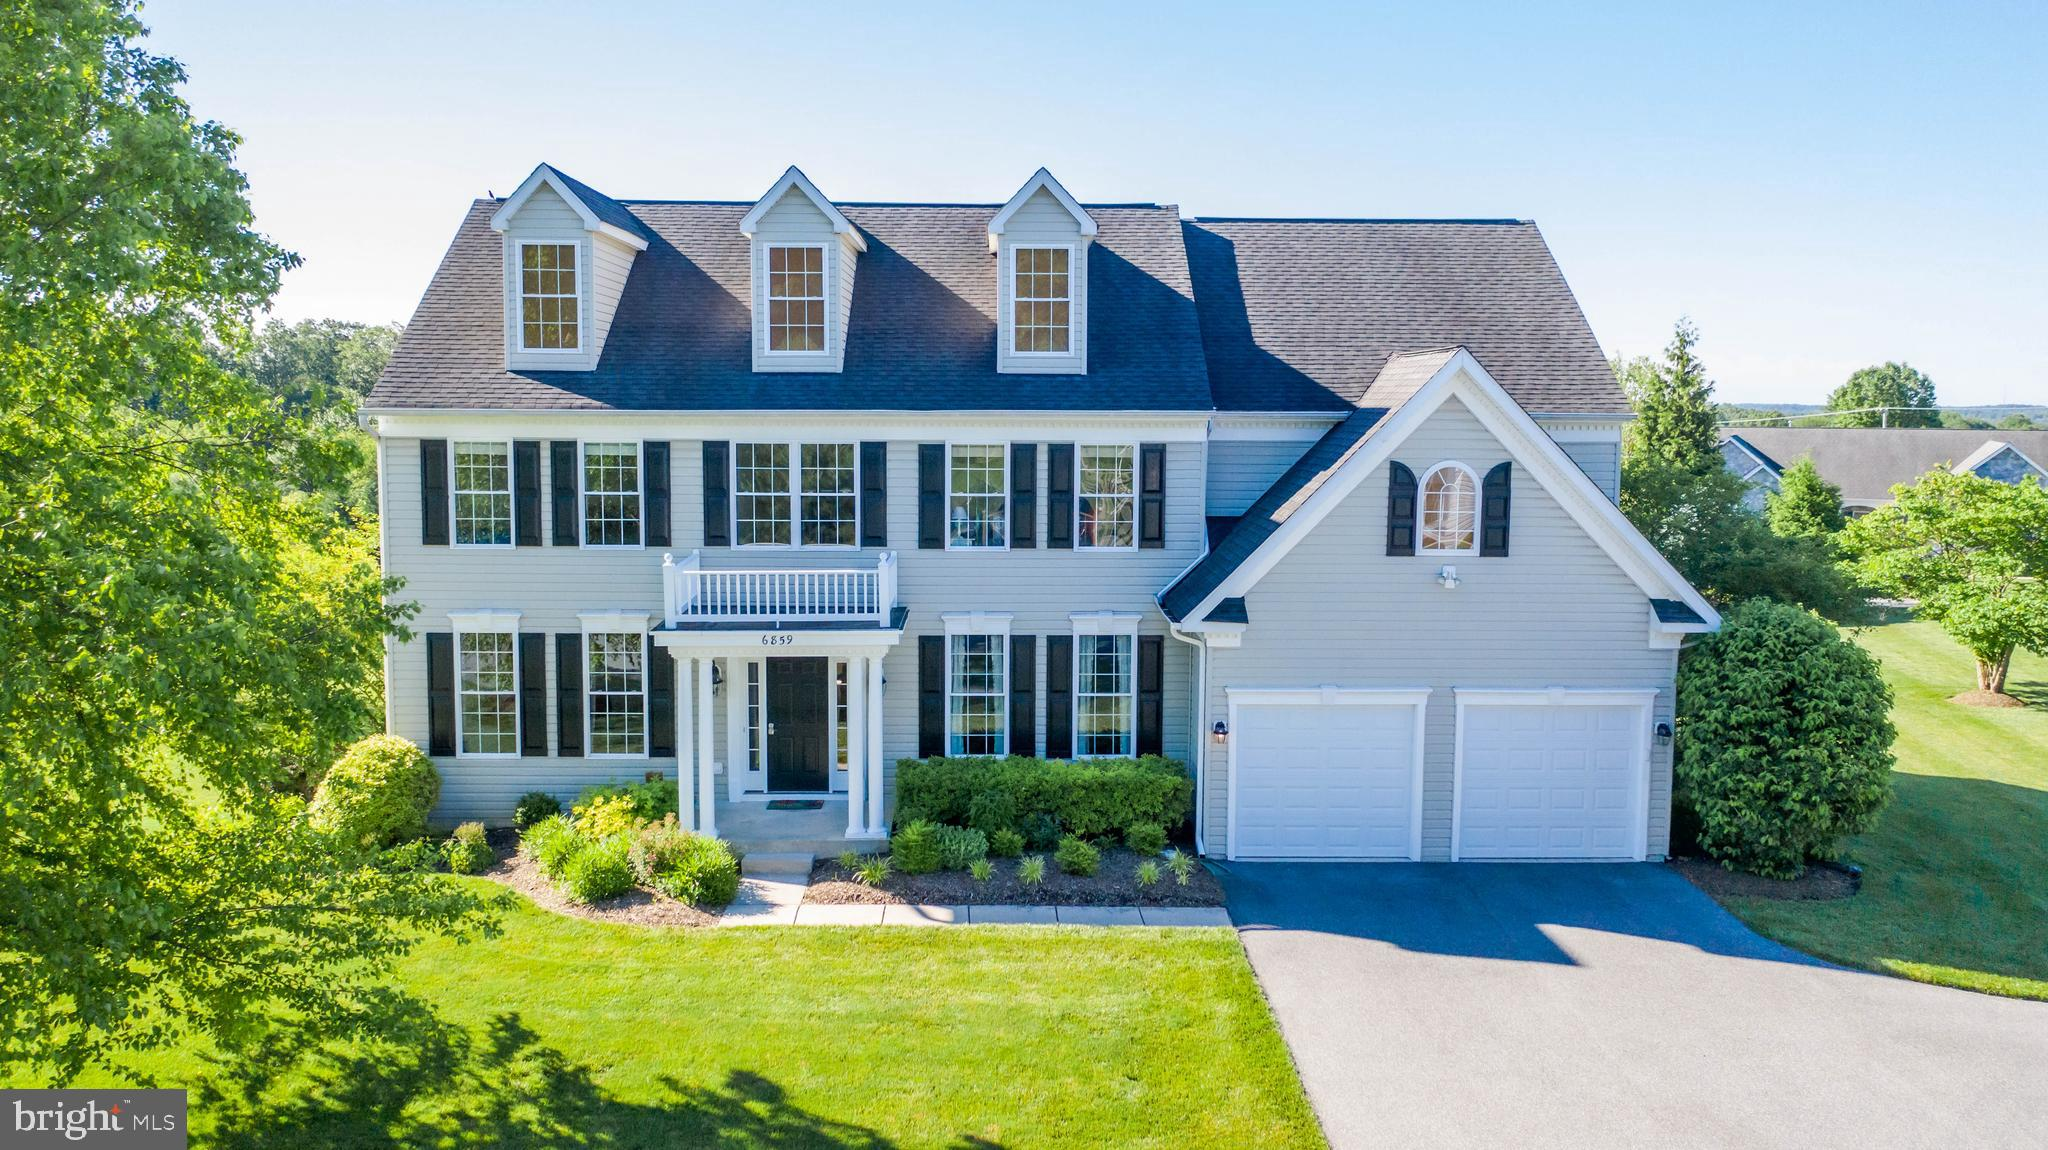 6859 Aster Way, Sykesville, MD 21784